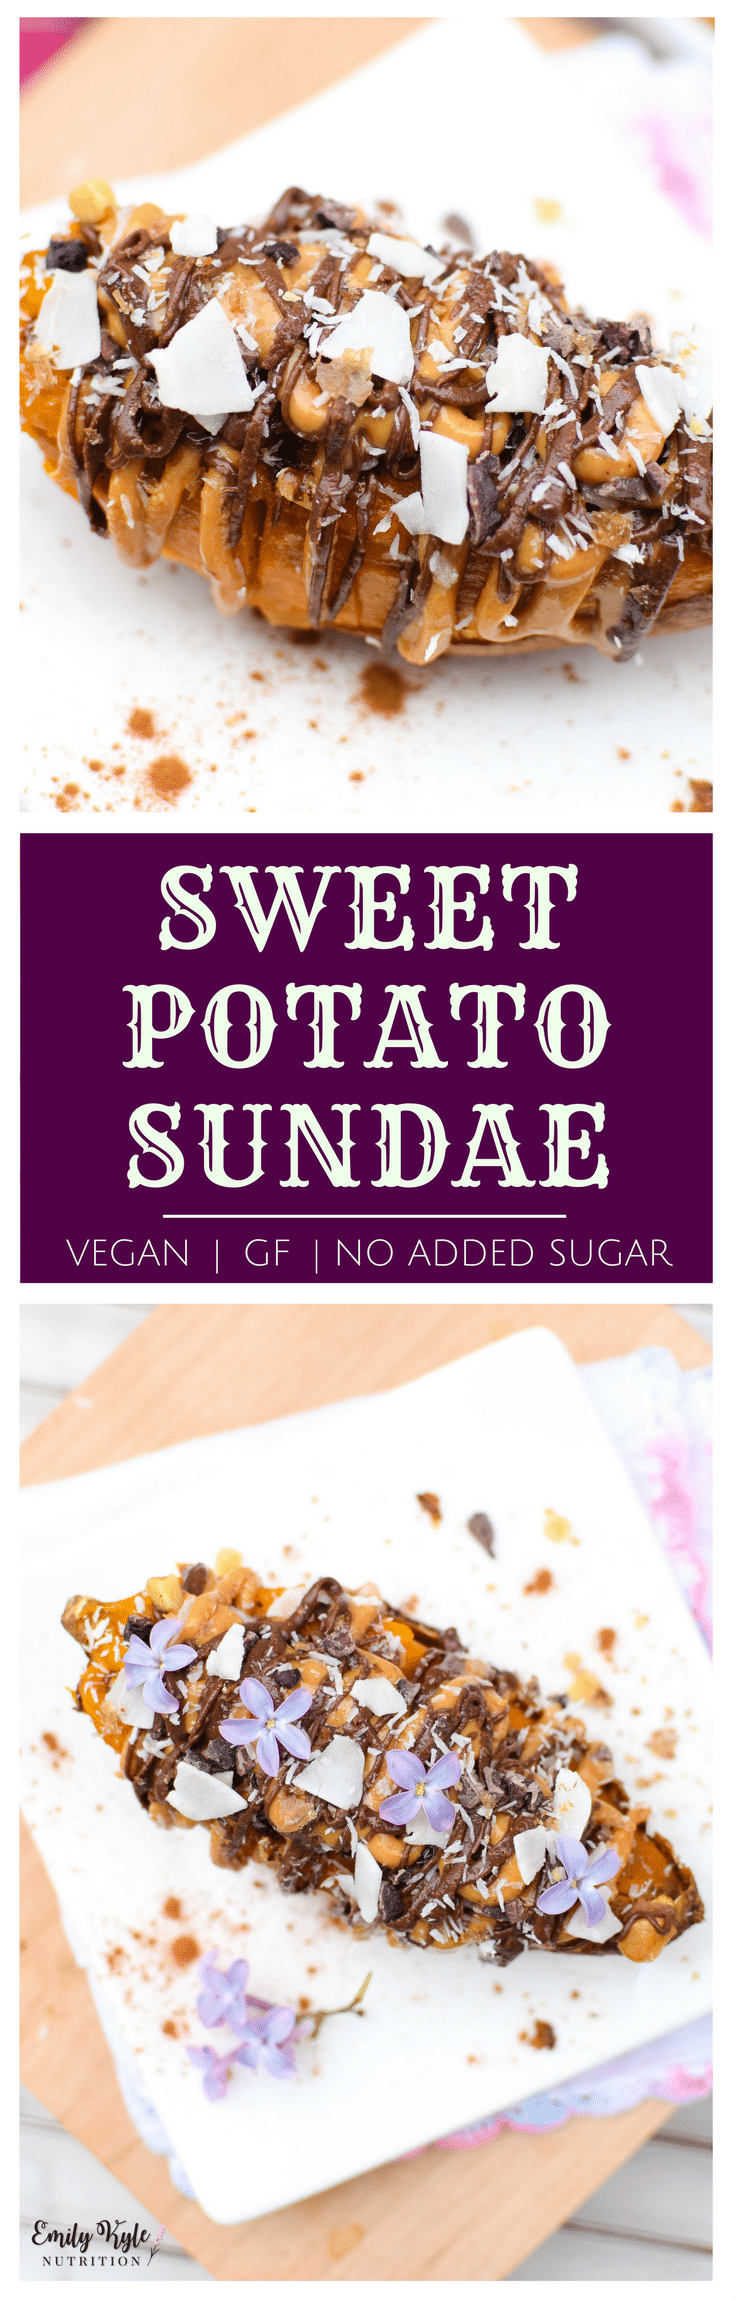 This Peanut Butter Stuffed Sweet Potato Sundae is a no-added sugar, naturally vegan & gluten free treat that will leave even the sweetest sweet tooth satisfied!